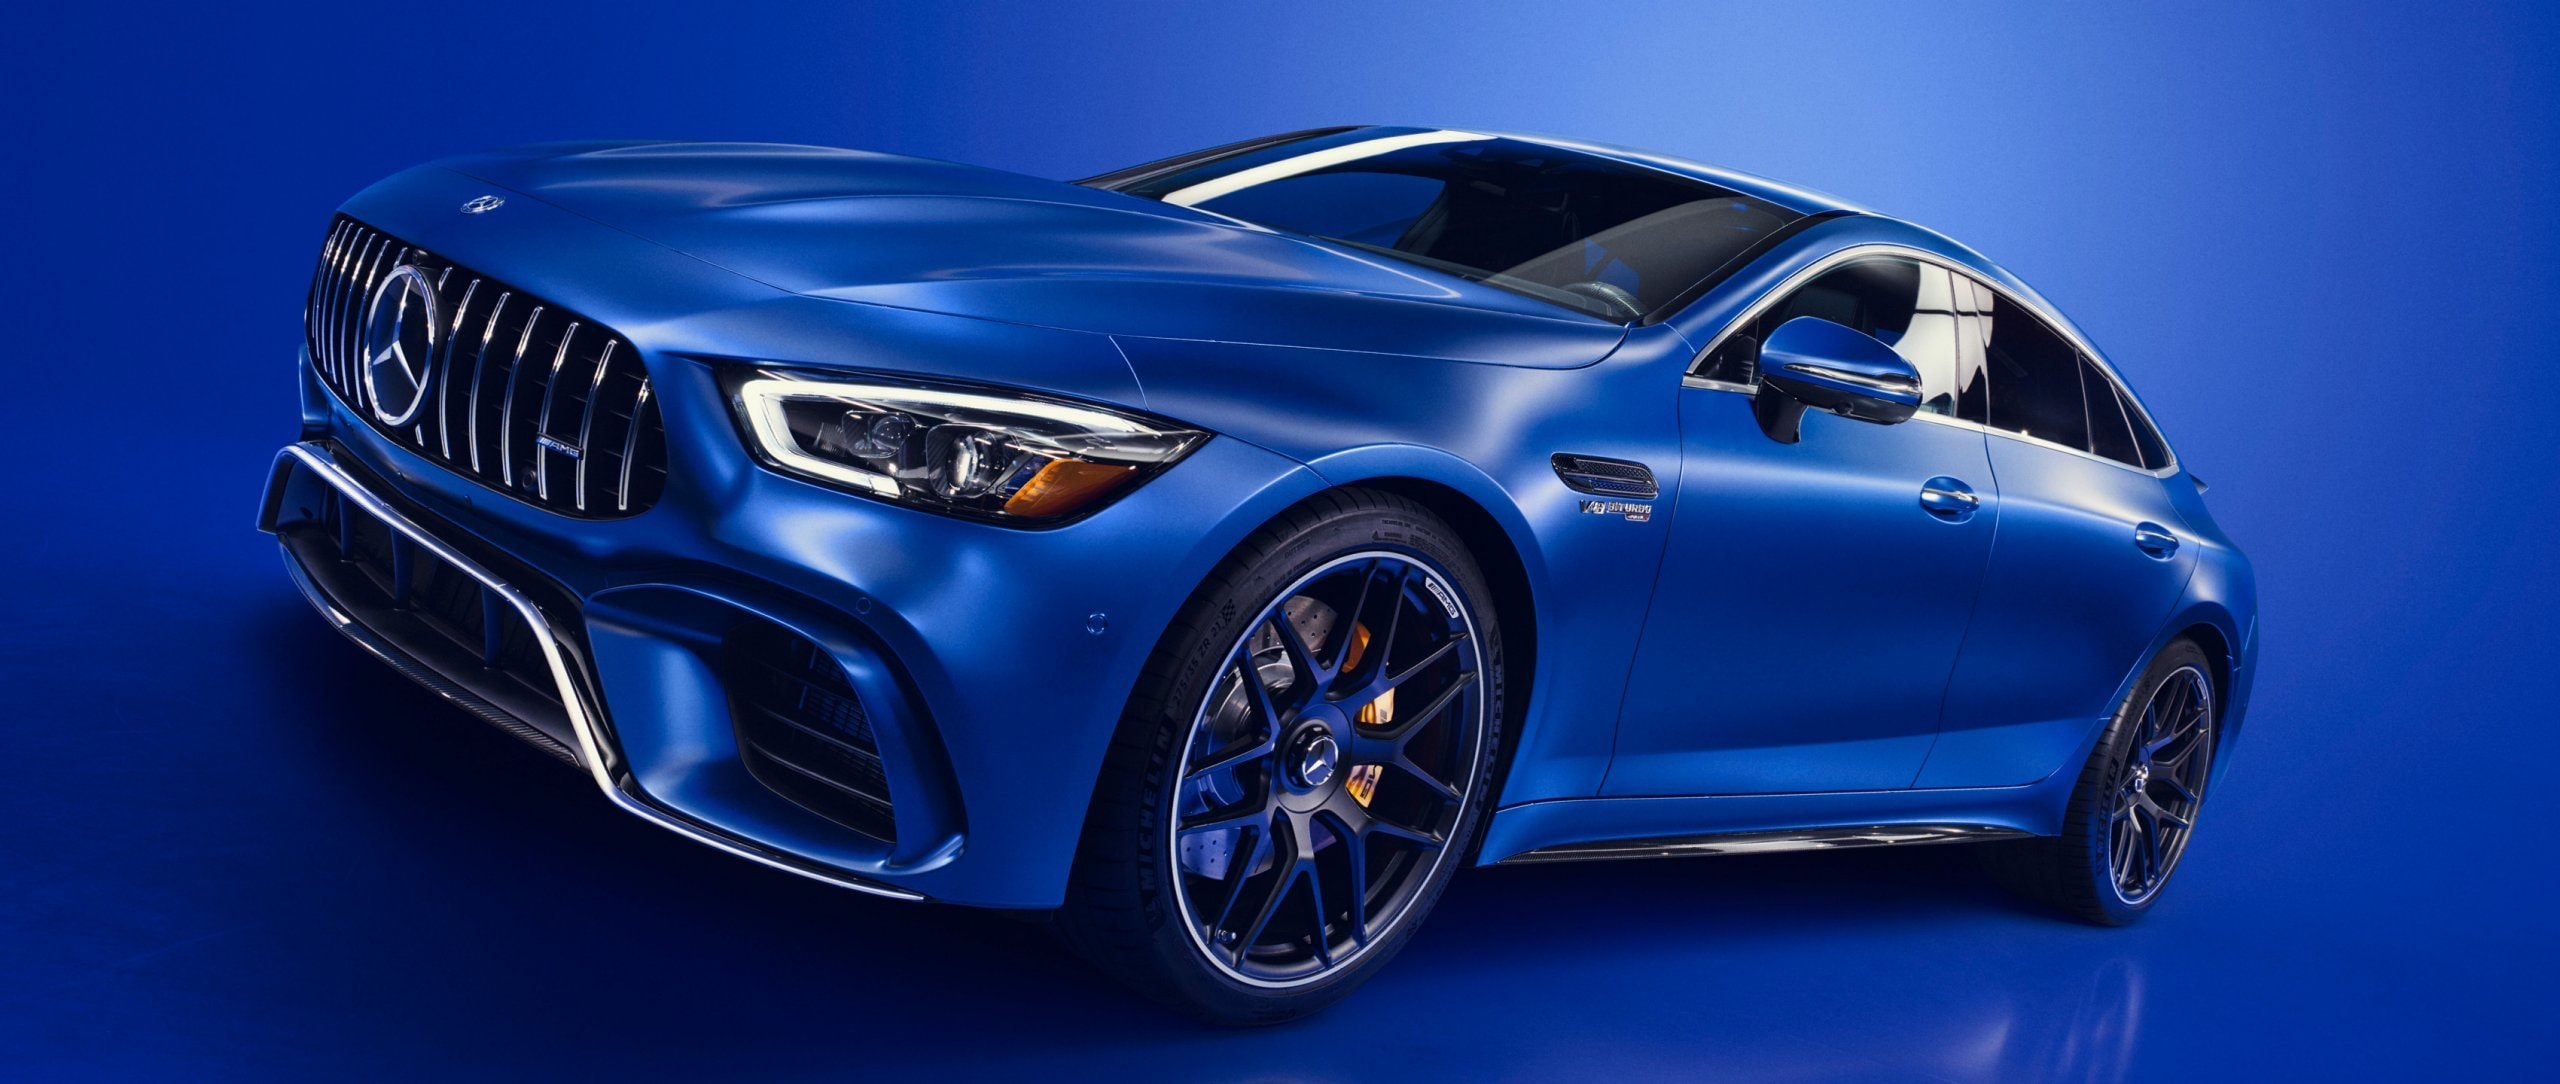 The Mercedes-AMG GT 63 S 4MATIC+ in designo brilliant blue magno with blue background.